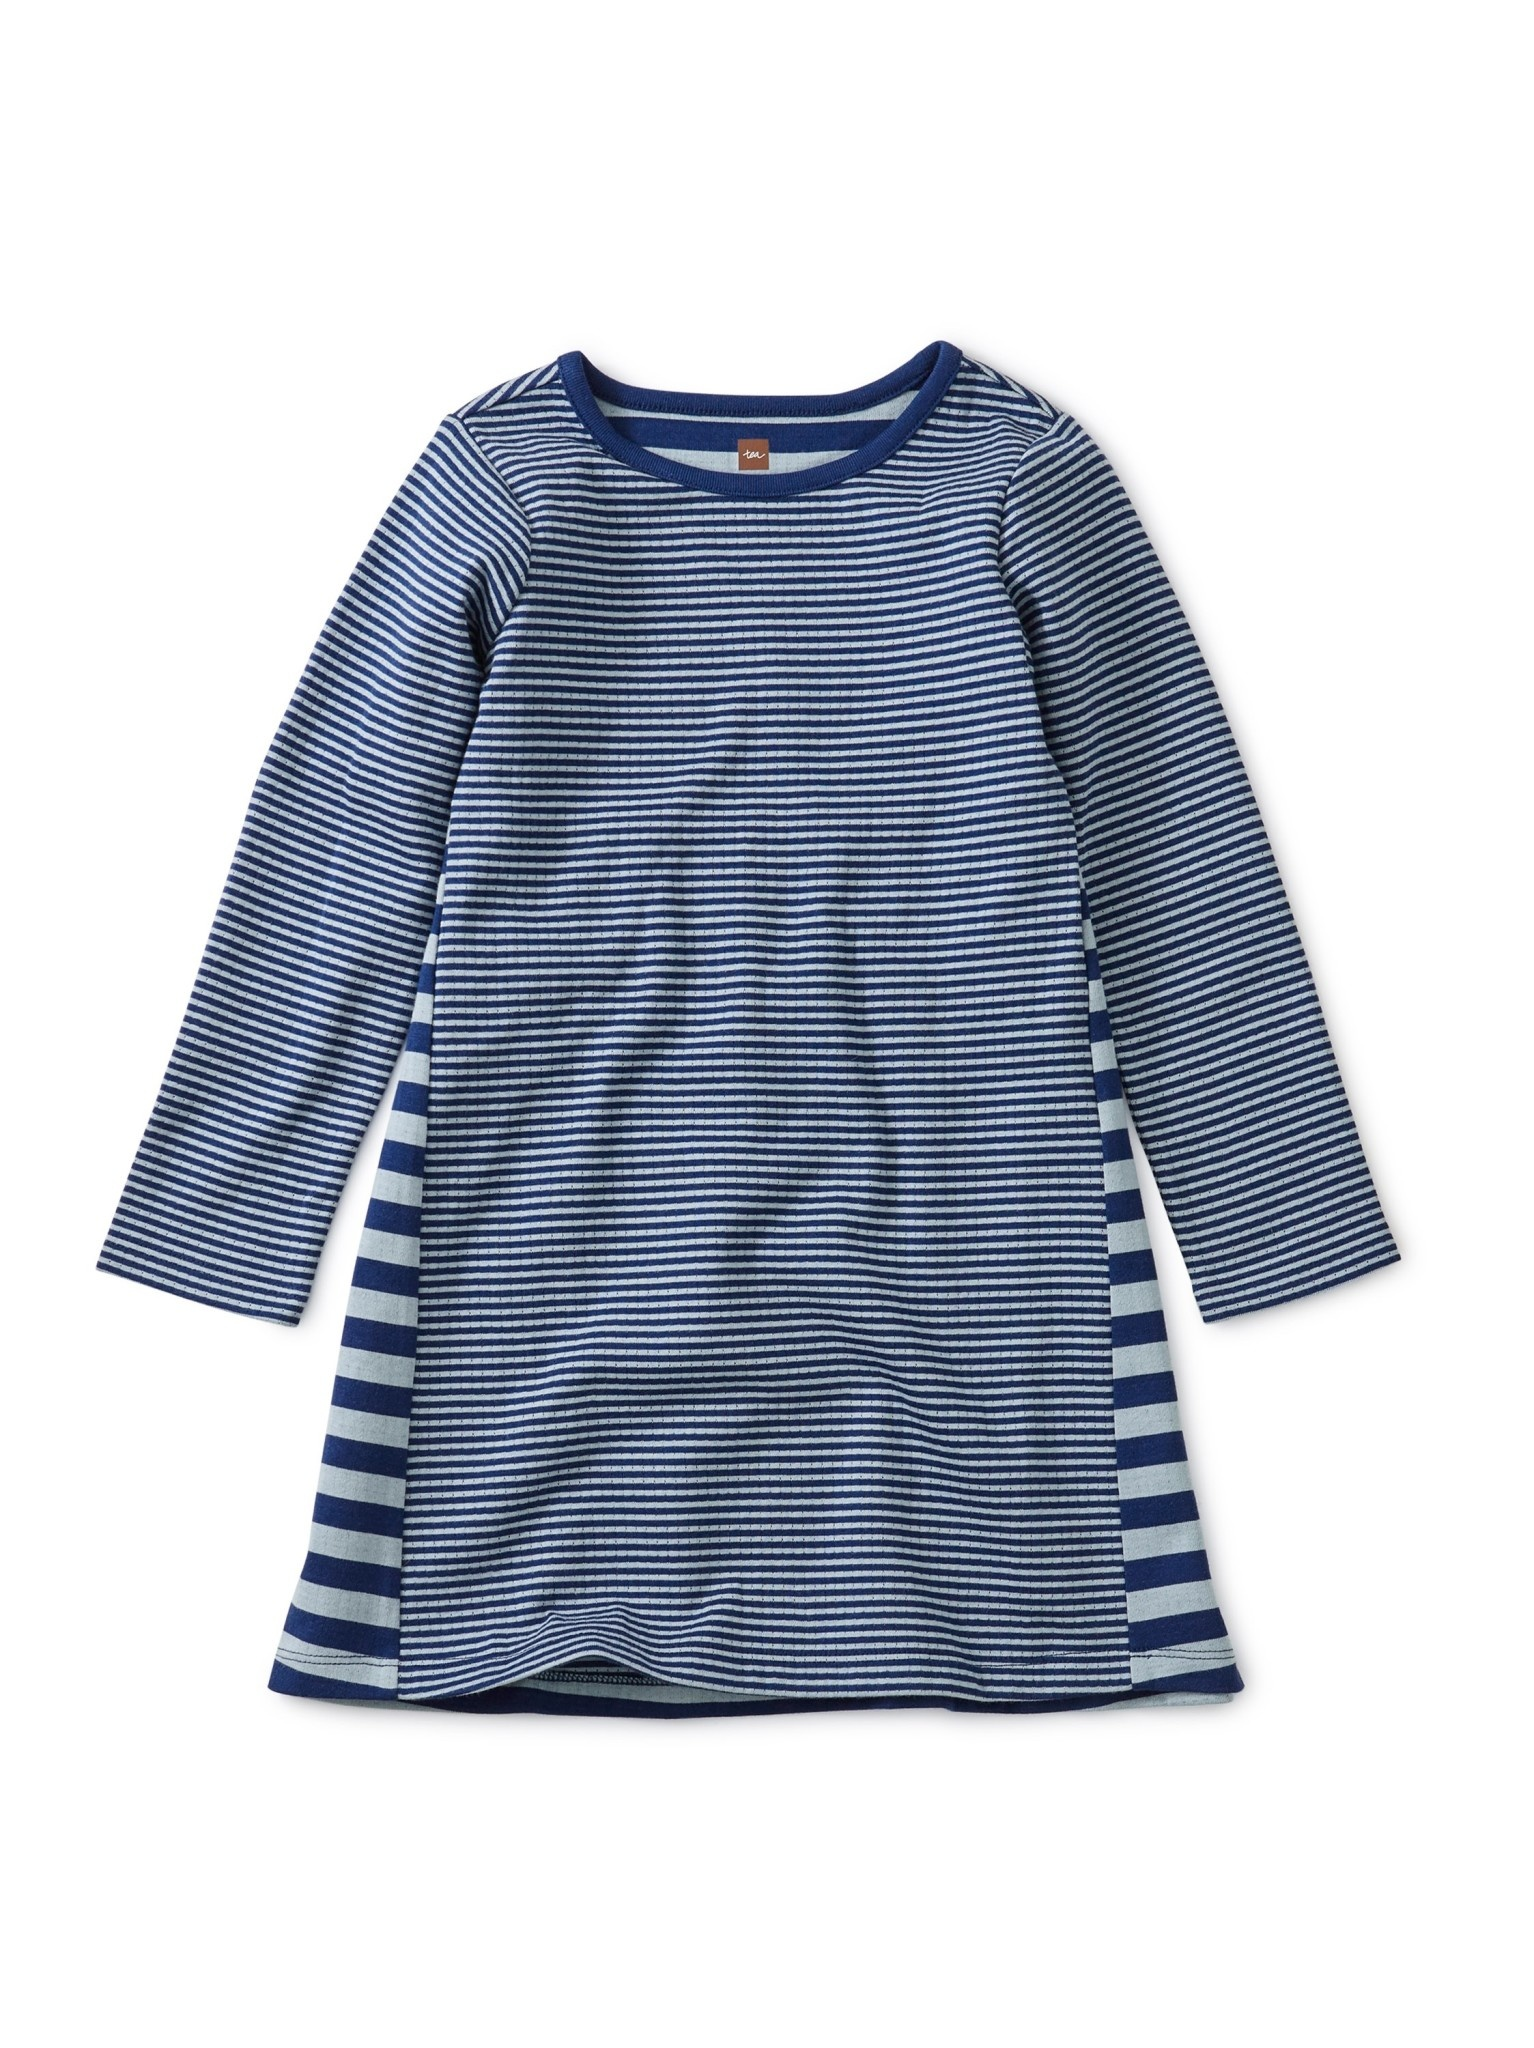 Tea Collection Nightfall Striped Knit Dress